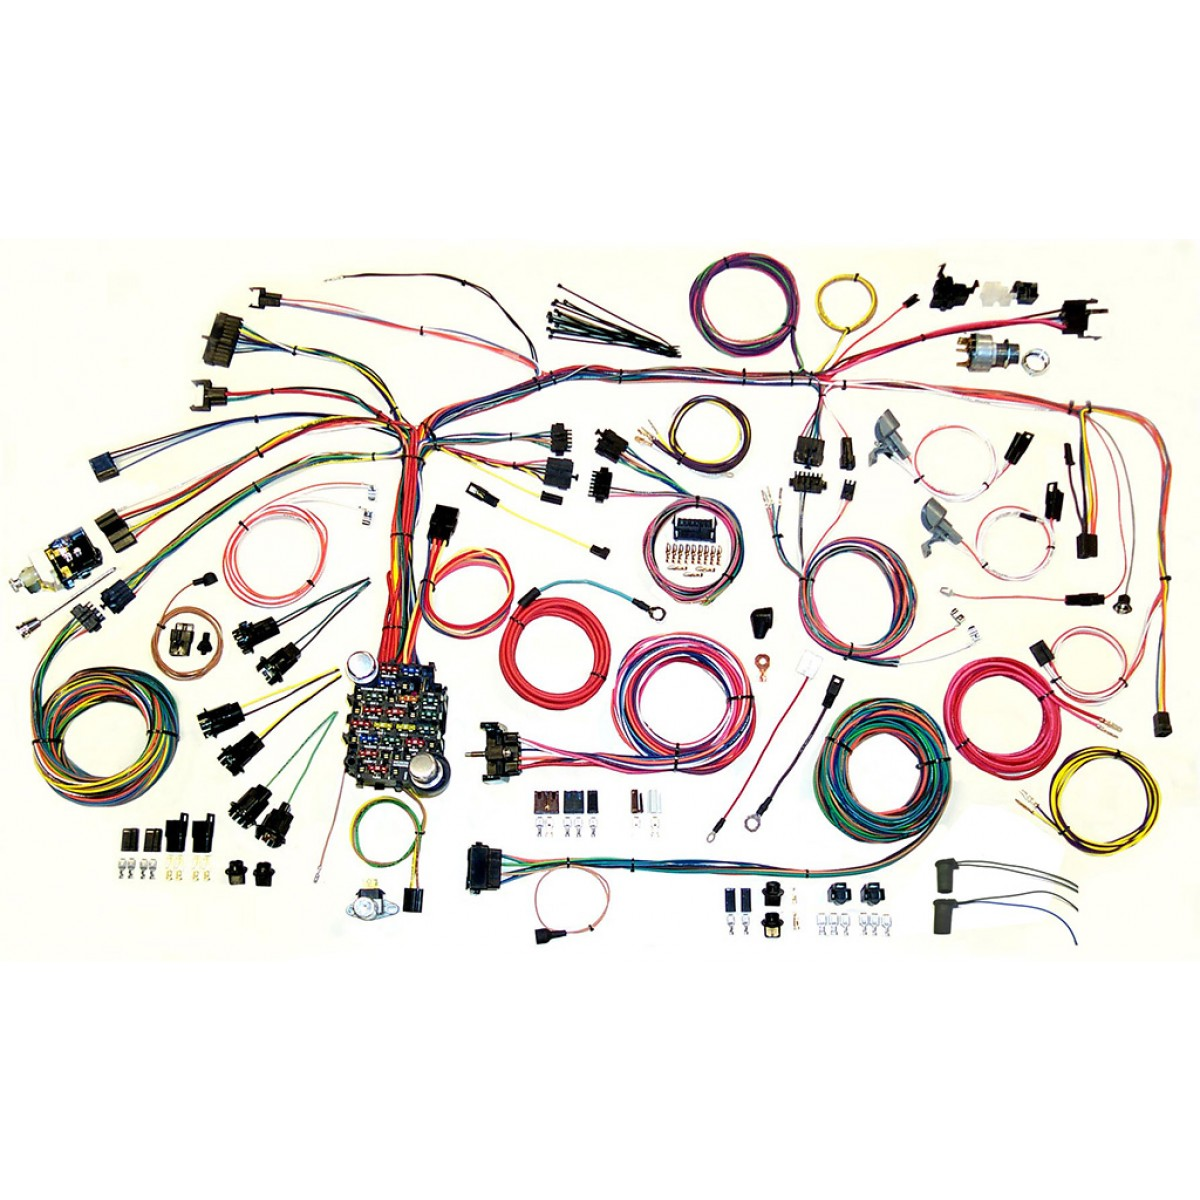 firebird wire harness complete wiring harness kit 1967 1968 firebird part 500886 1967 1968 pontiac firbird complete wiring harness kit 1967 1968 firebird engine wiring harness at metegol.co